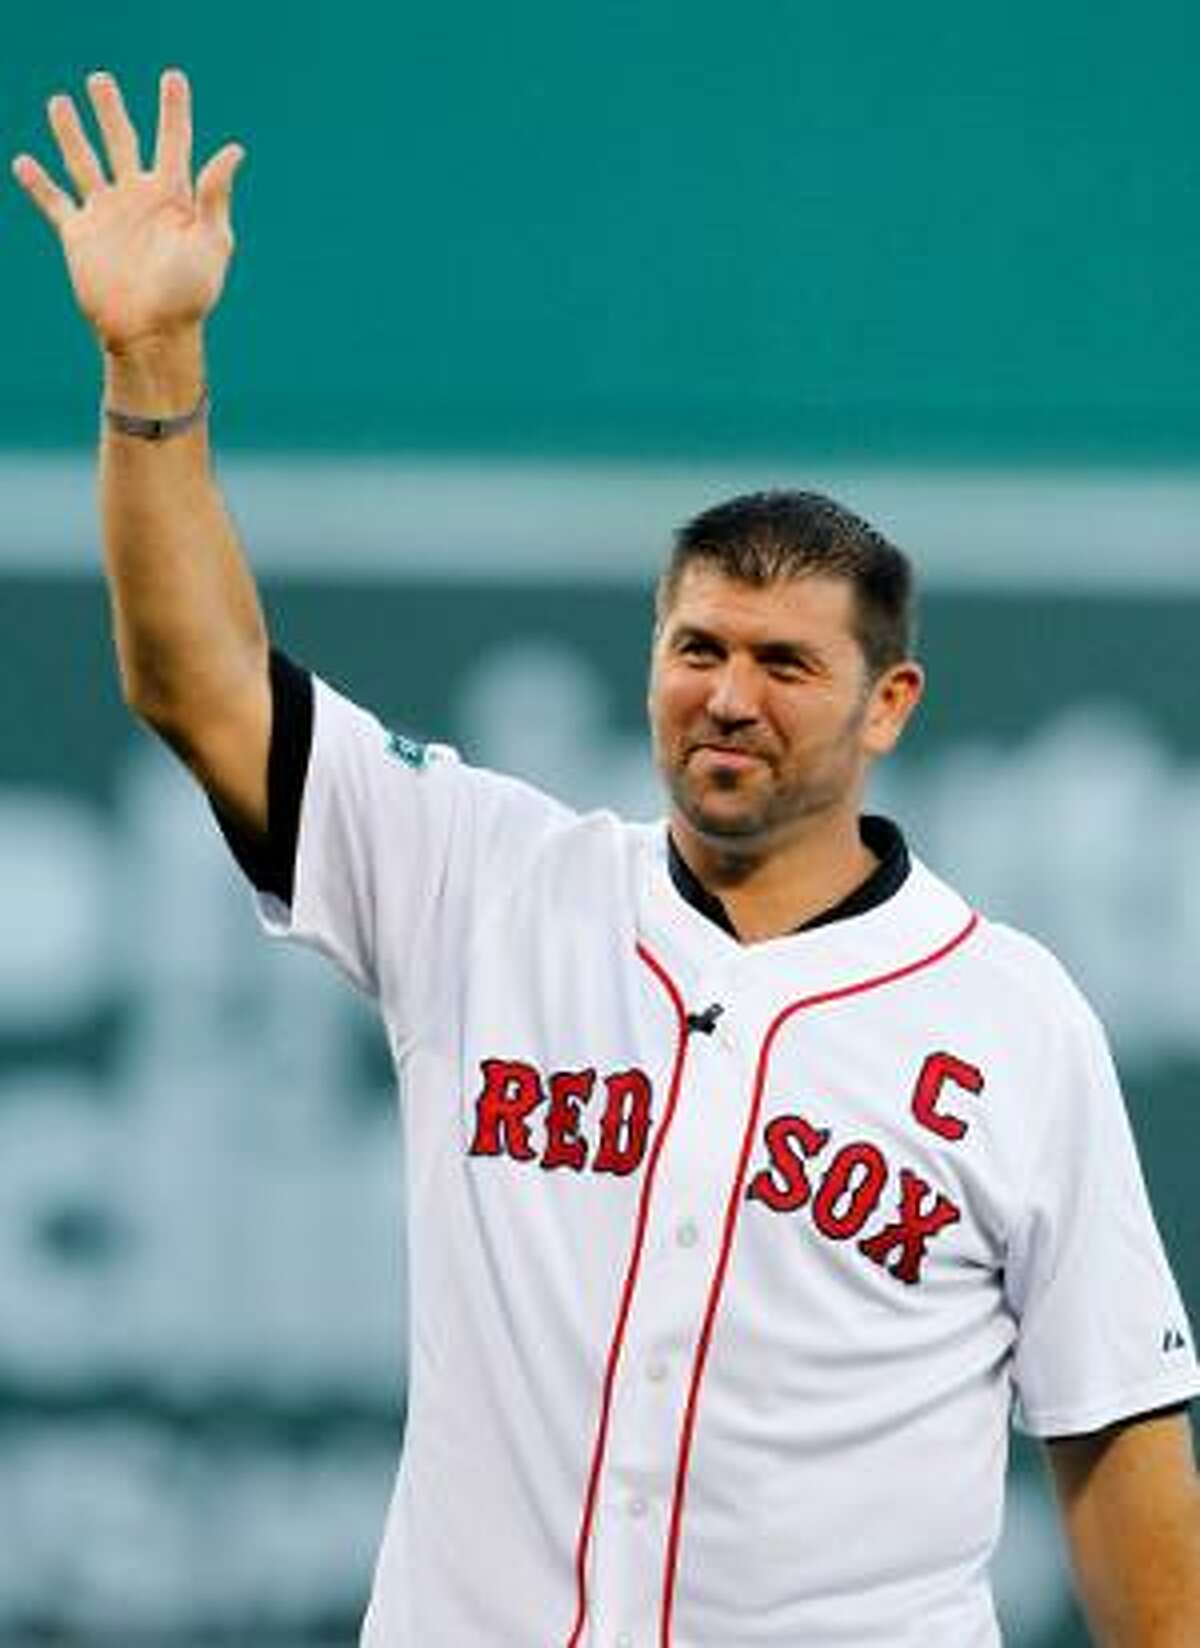 ASSOCIATED PRESS Former Boston Red Sox player Jason Varitek waves to the crowd during a ceremony to honor his time with the team before Saturday's night game between the Red Sox and Toronto Blue Jays at Fenway Park in Boston.